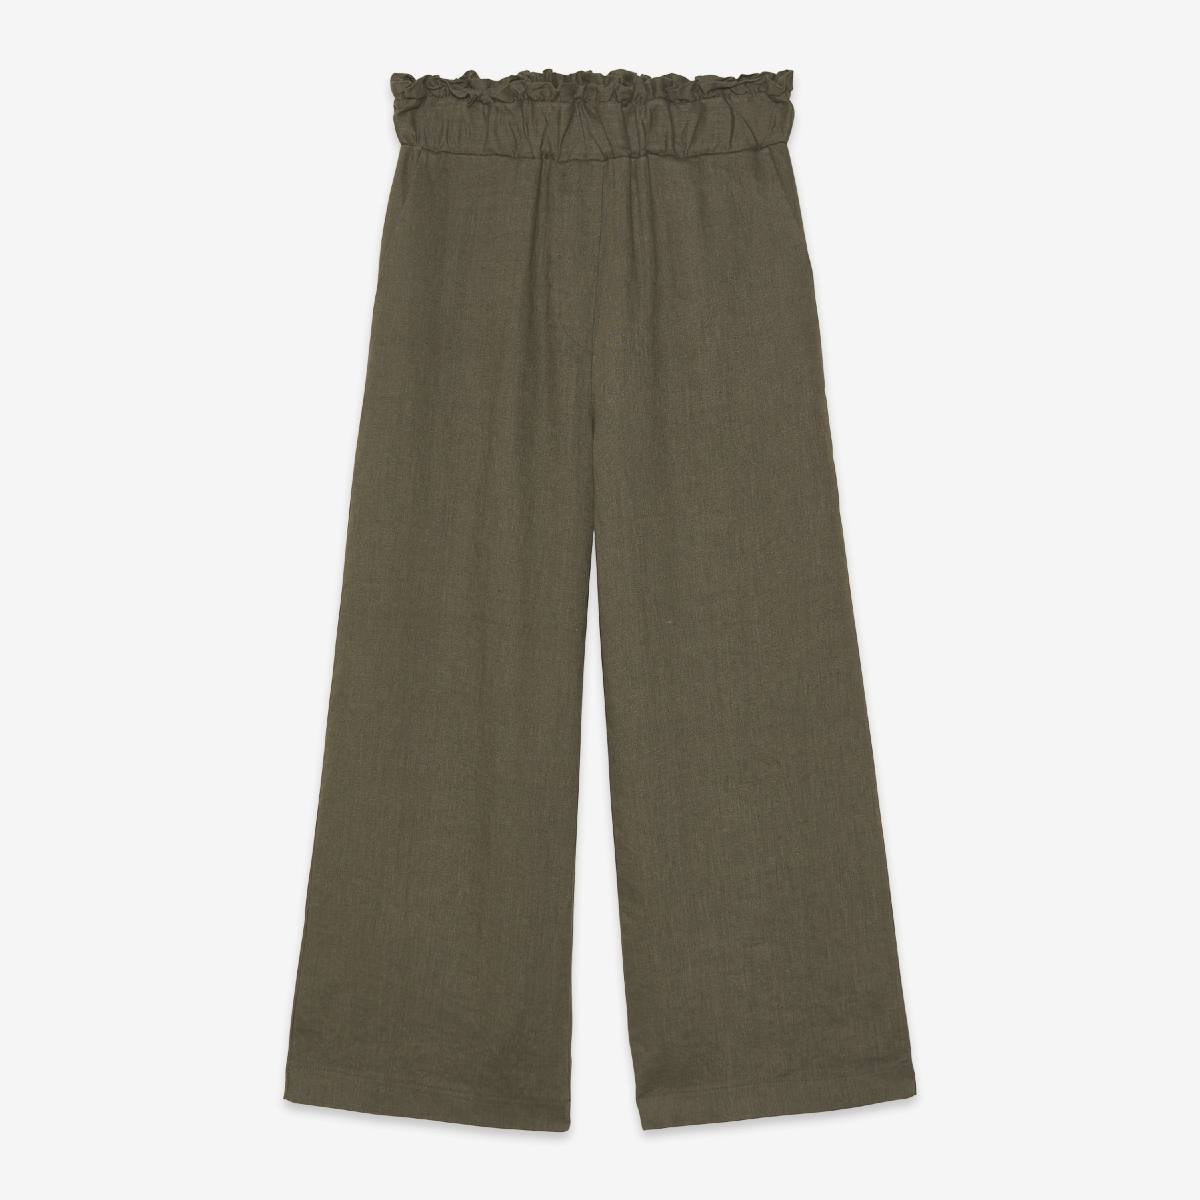 Crop Linen Military Trousers by Ottod'Ame   Restoration Yard